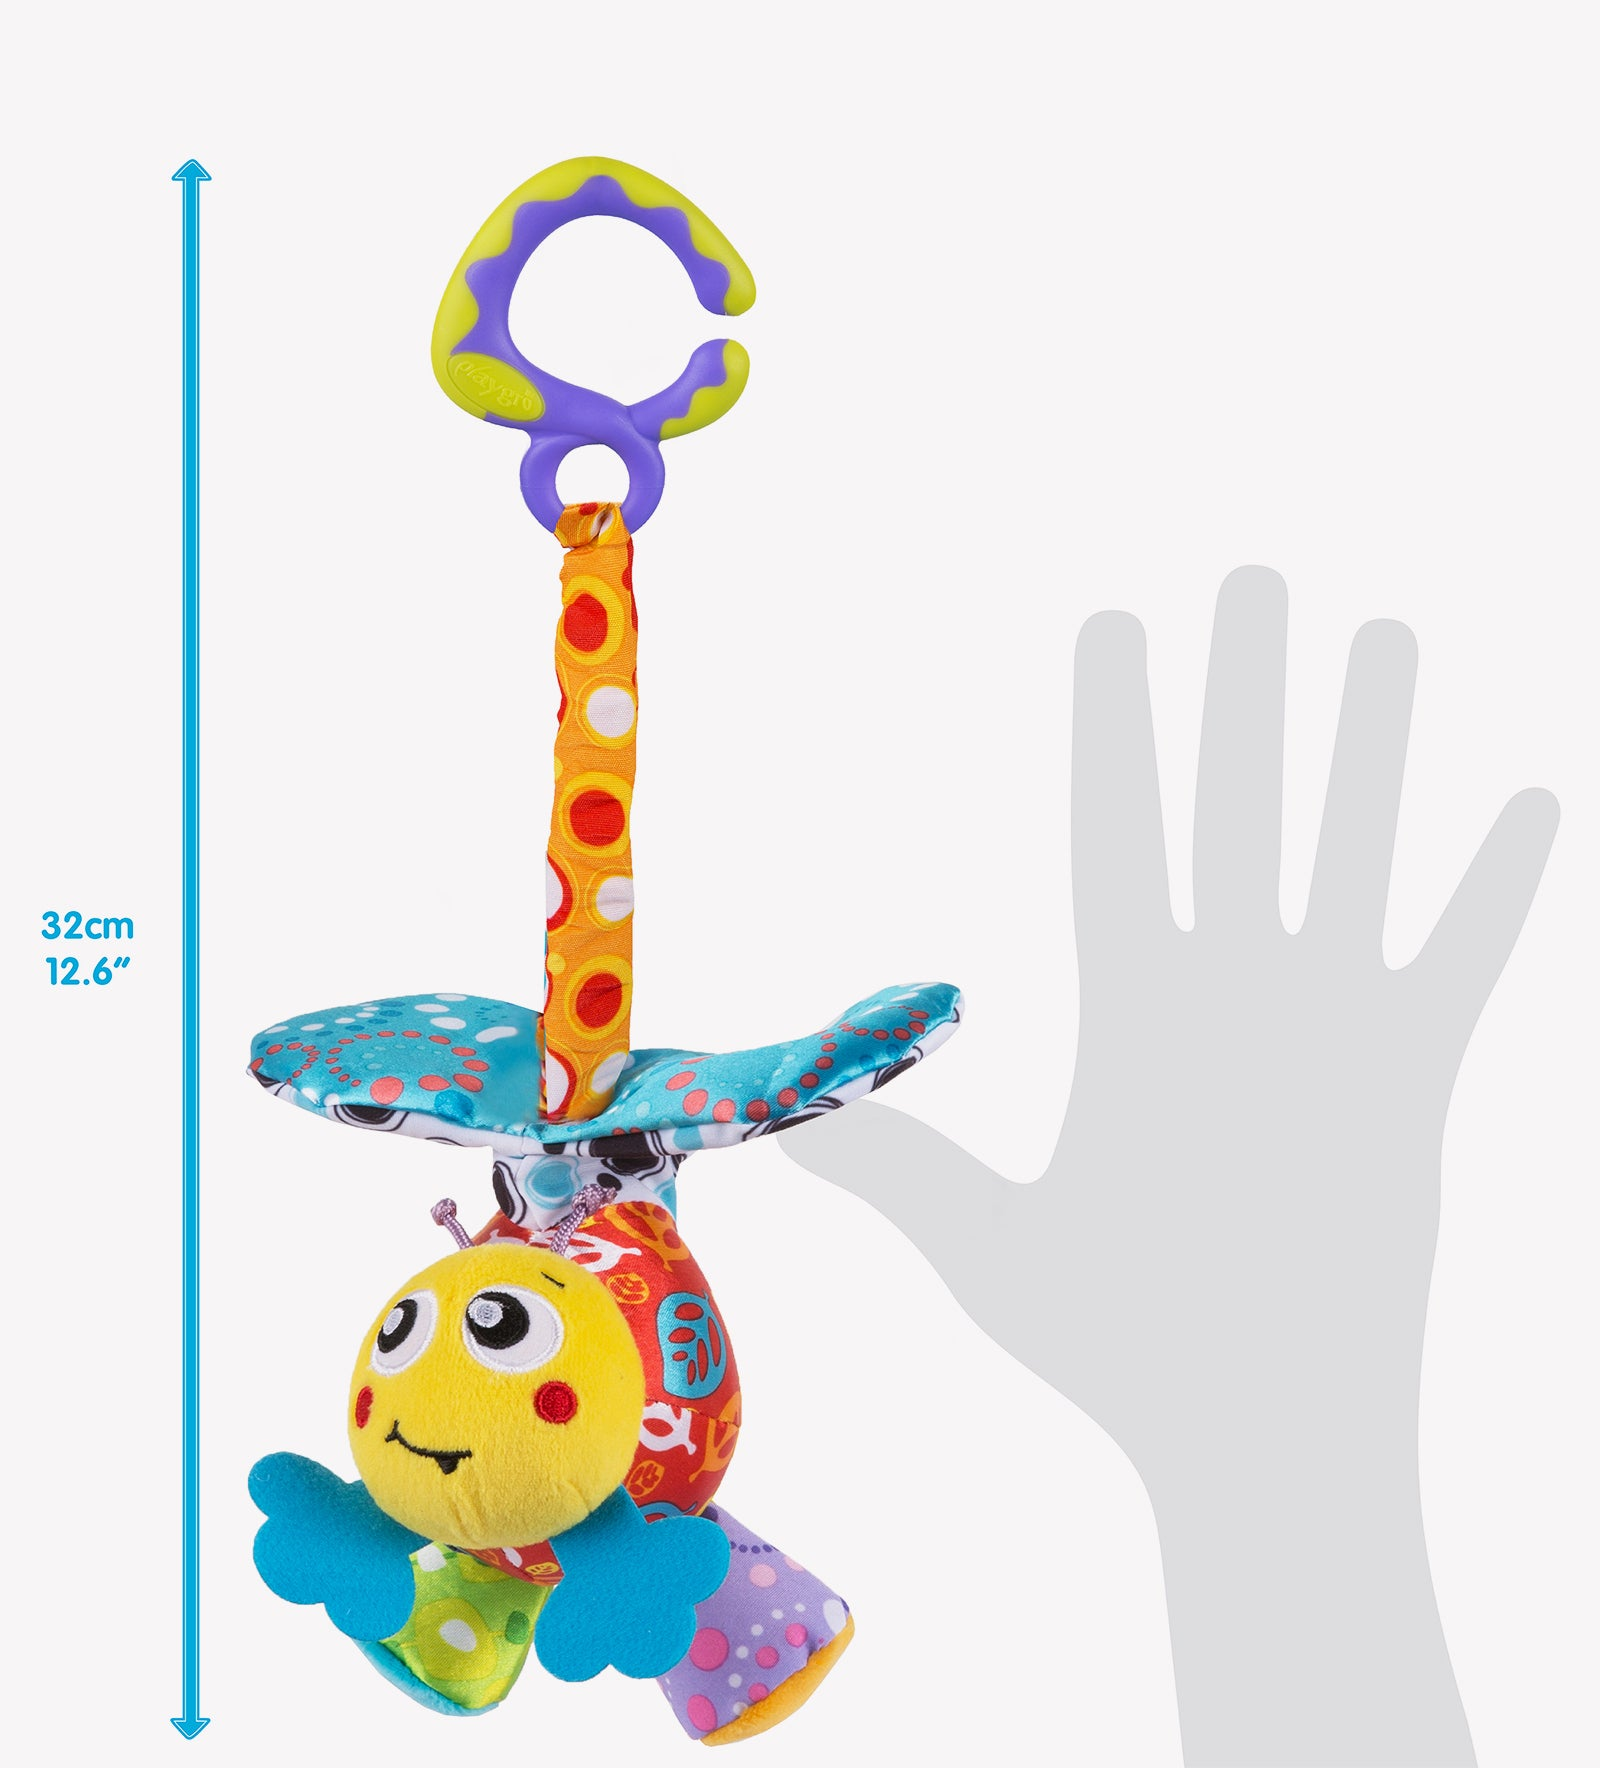 Playgro baby toy Mover Bee size in comparison to human hands